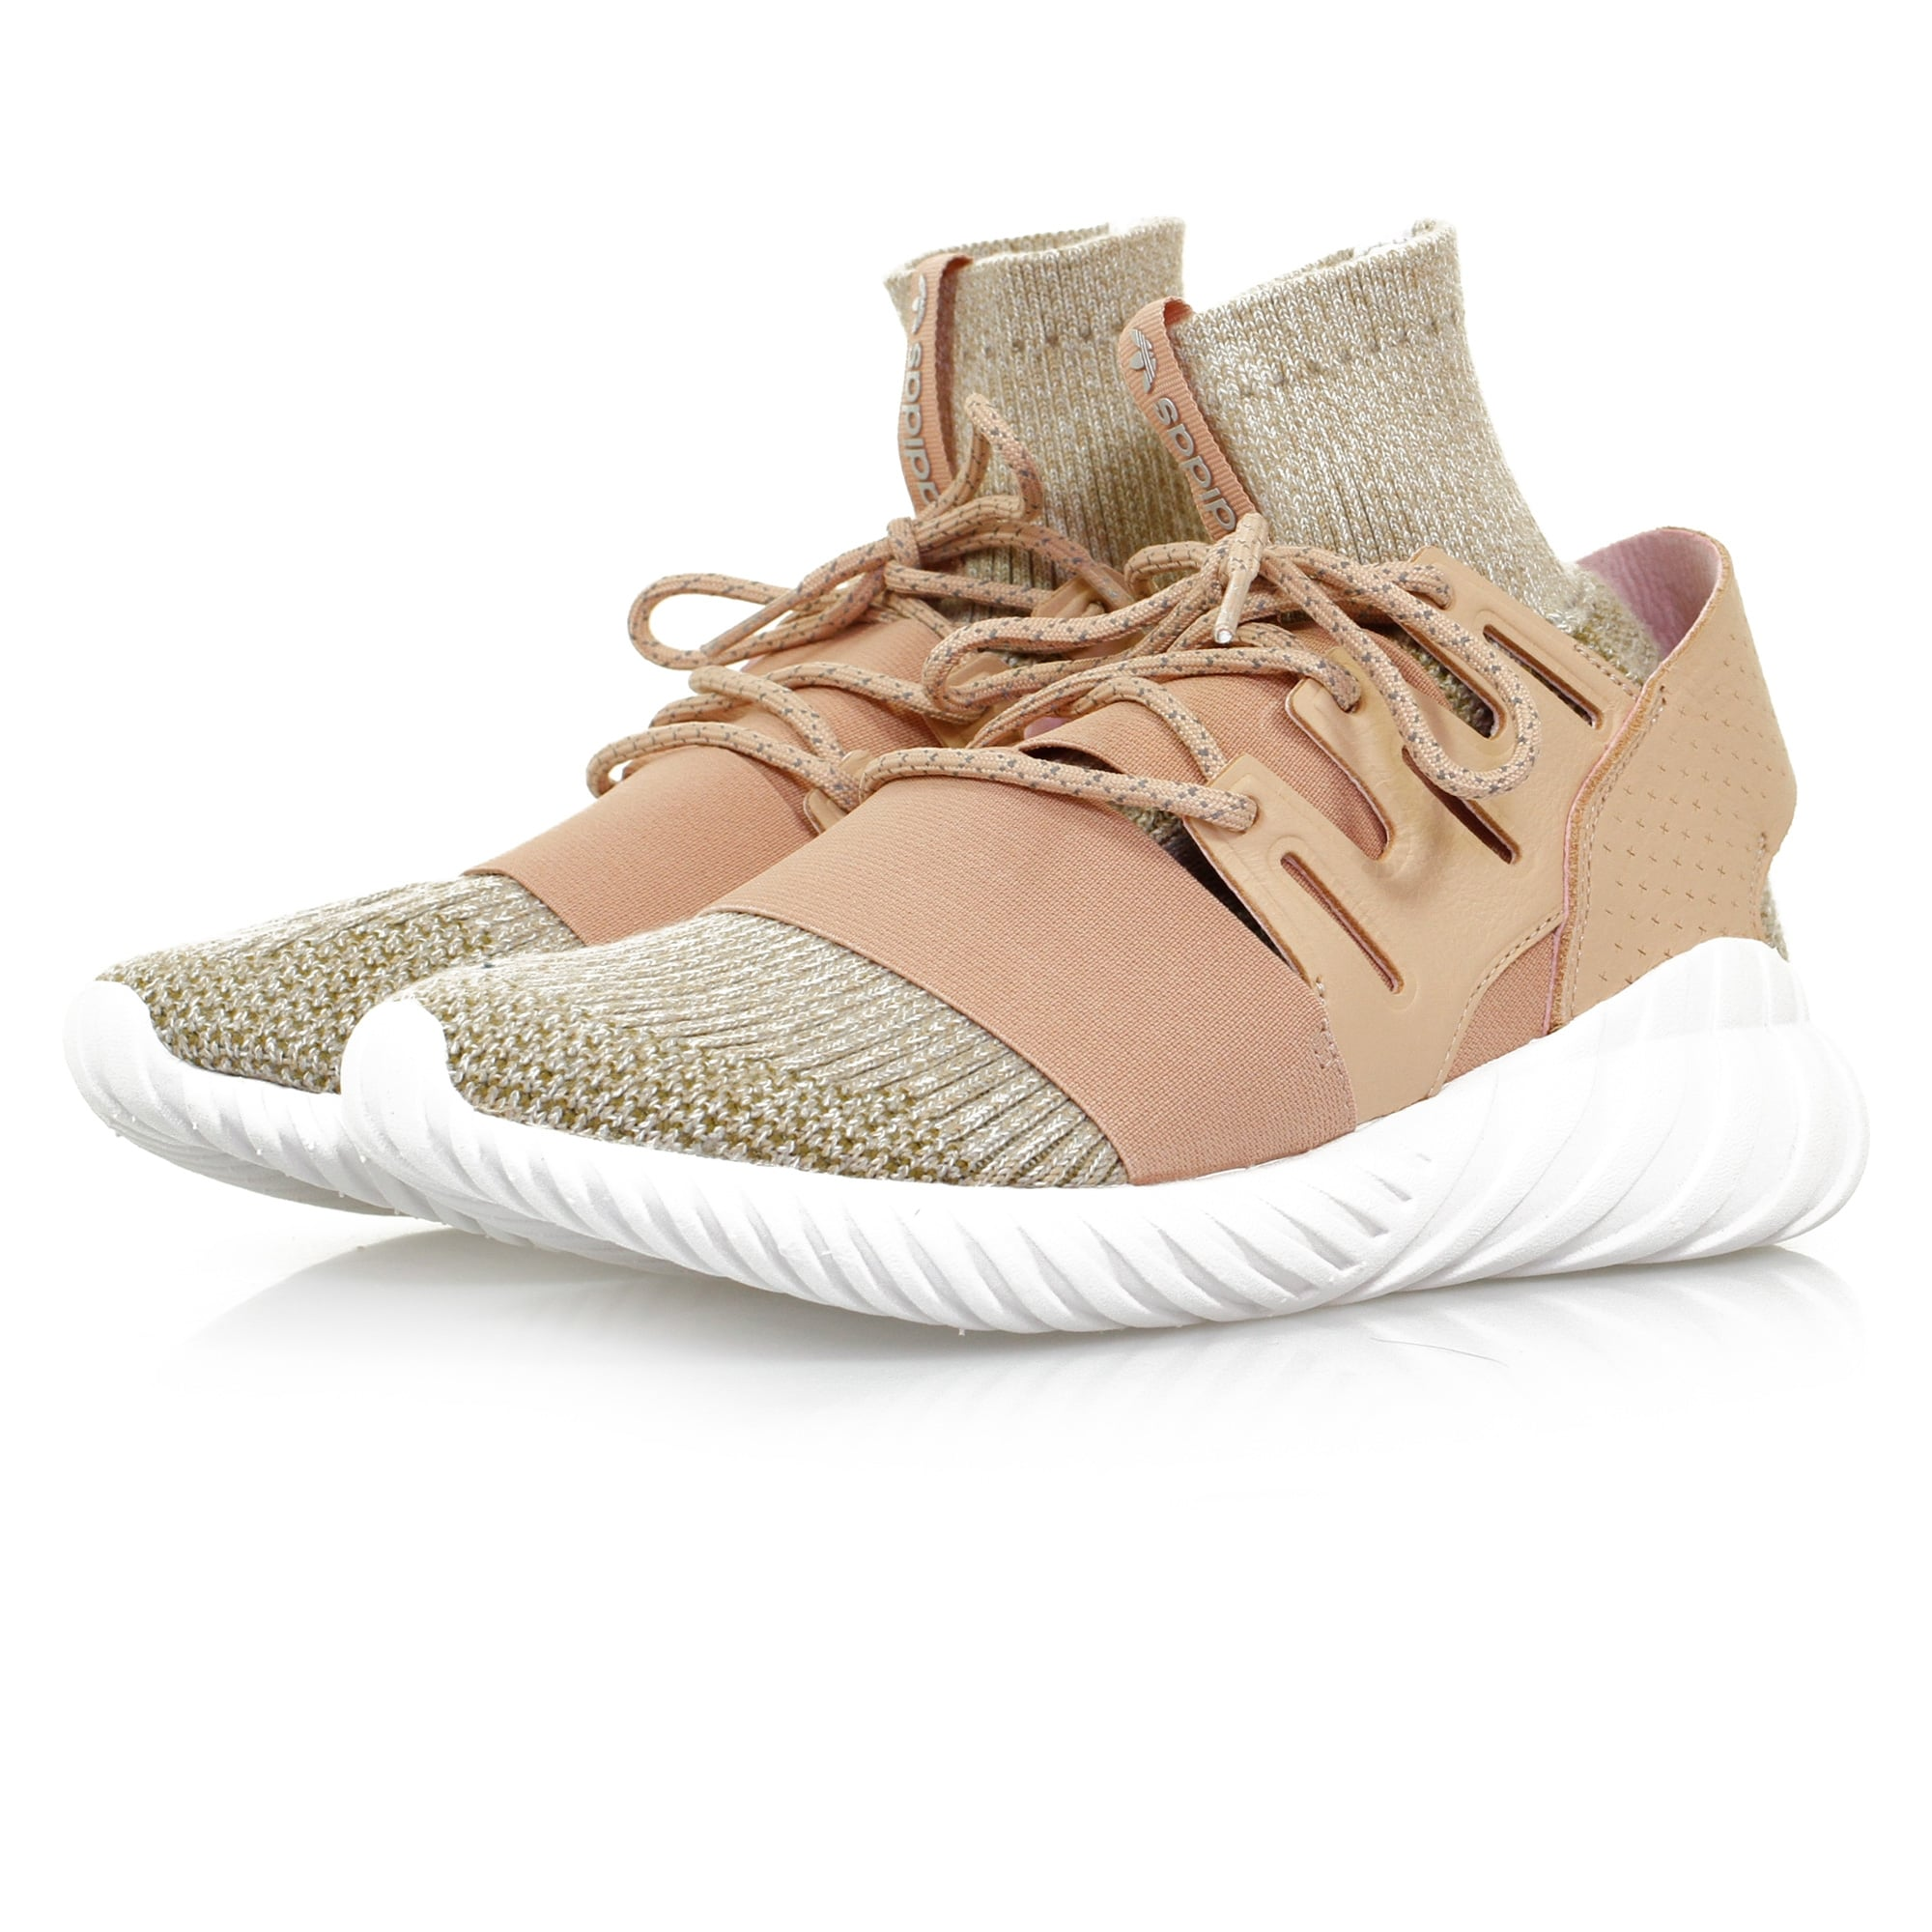 Cheap Adidas Tubular Primeknit Cheap Adidas NZ